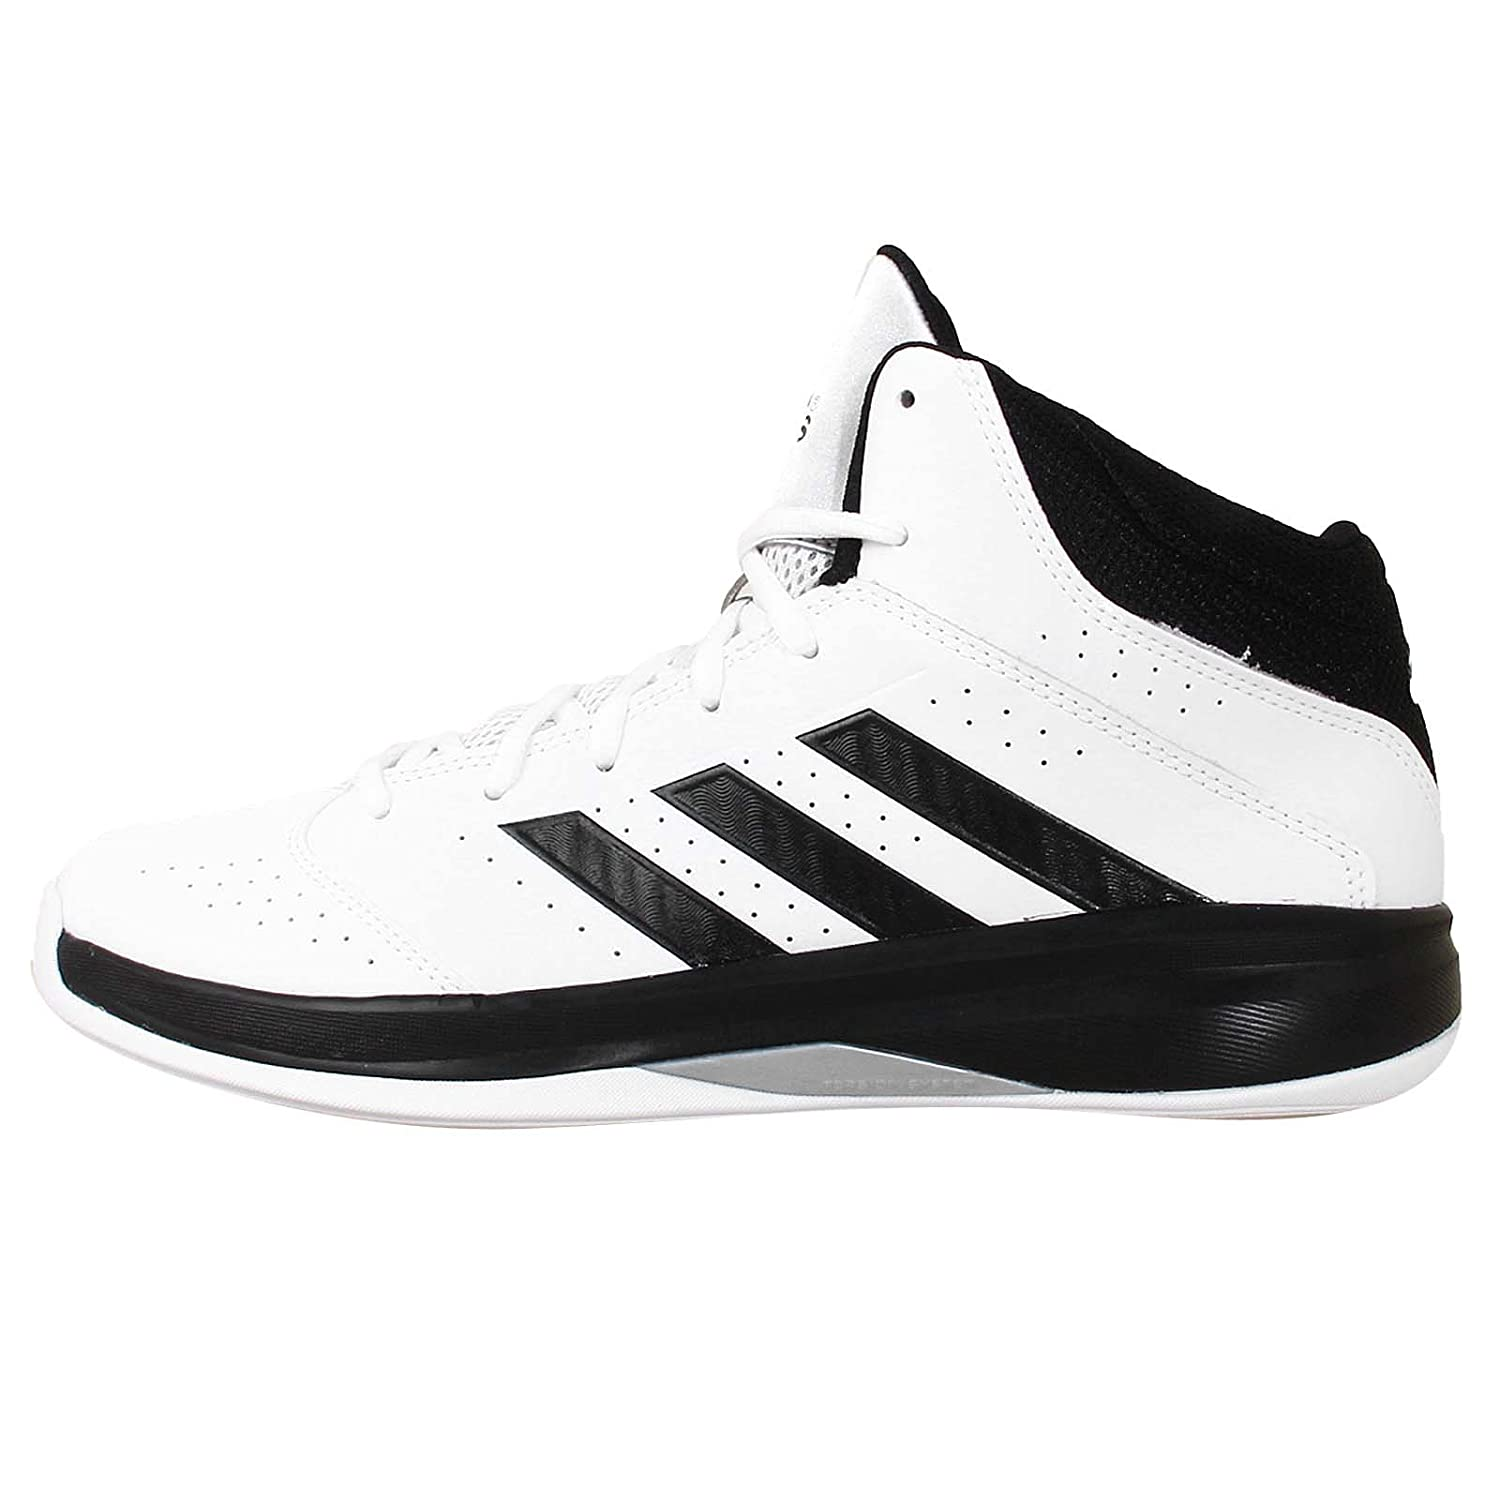 Adidas Men s Isolation 2 Basketball Shoes  Buy Online at Low Prices in  India - Amazon.in 14fc89dcd